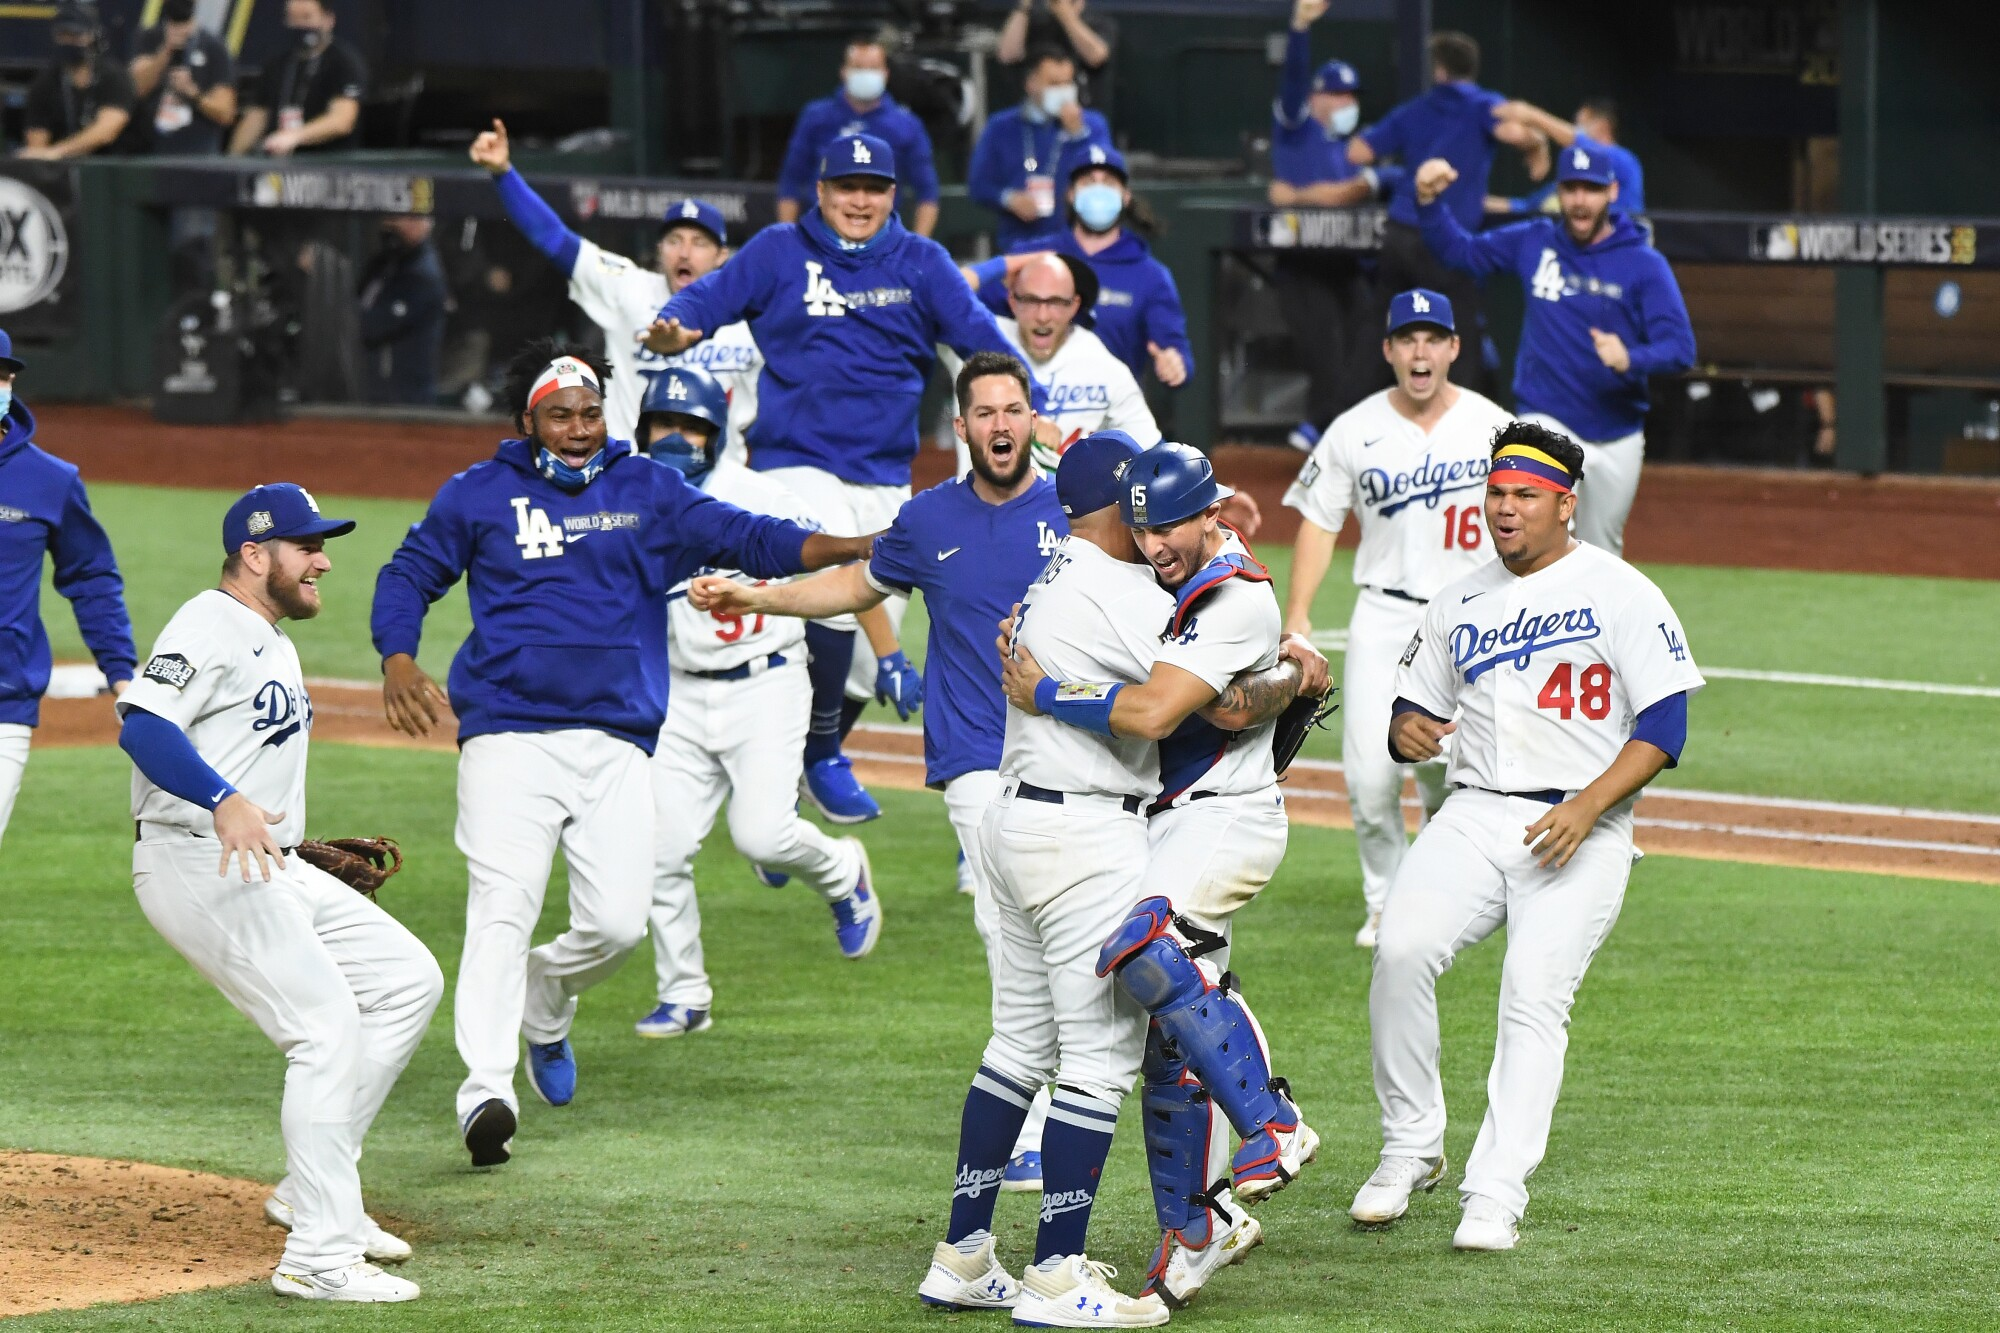 Dodgers embrace on the field as they celebrate their World Series win.